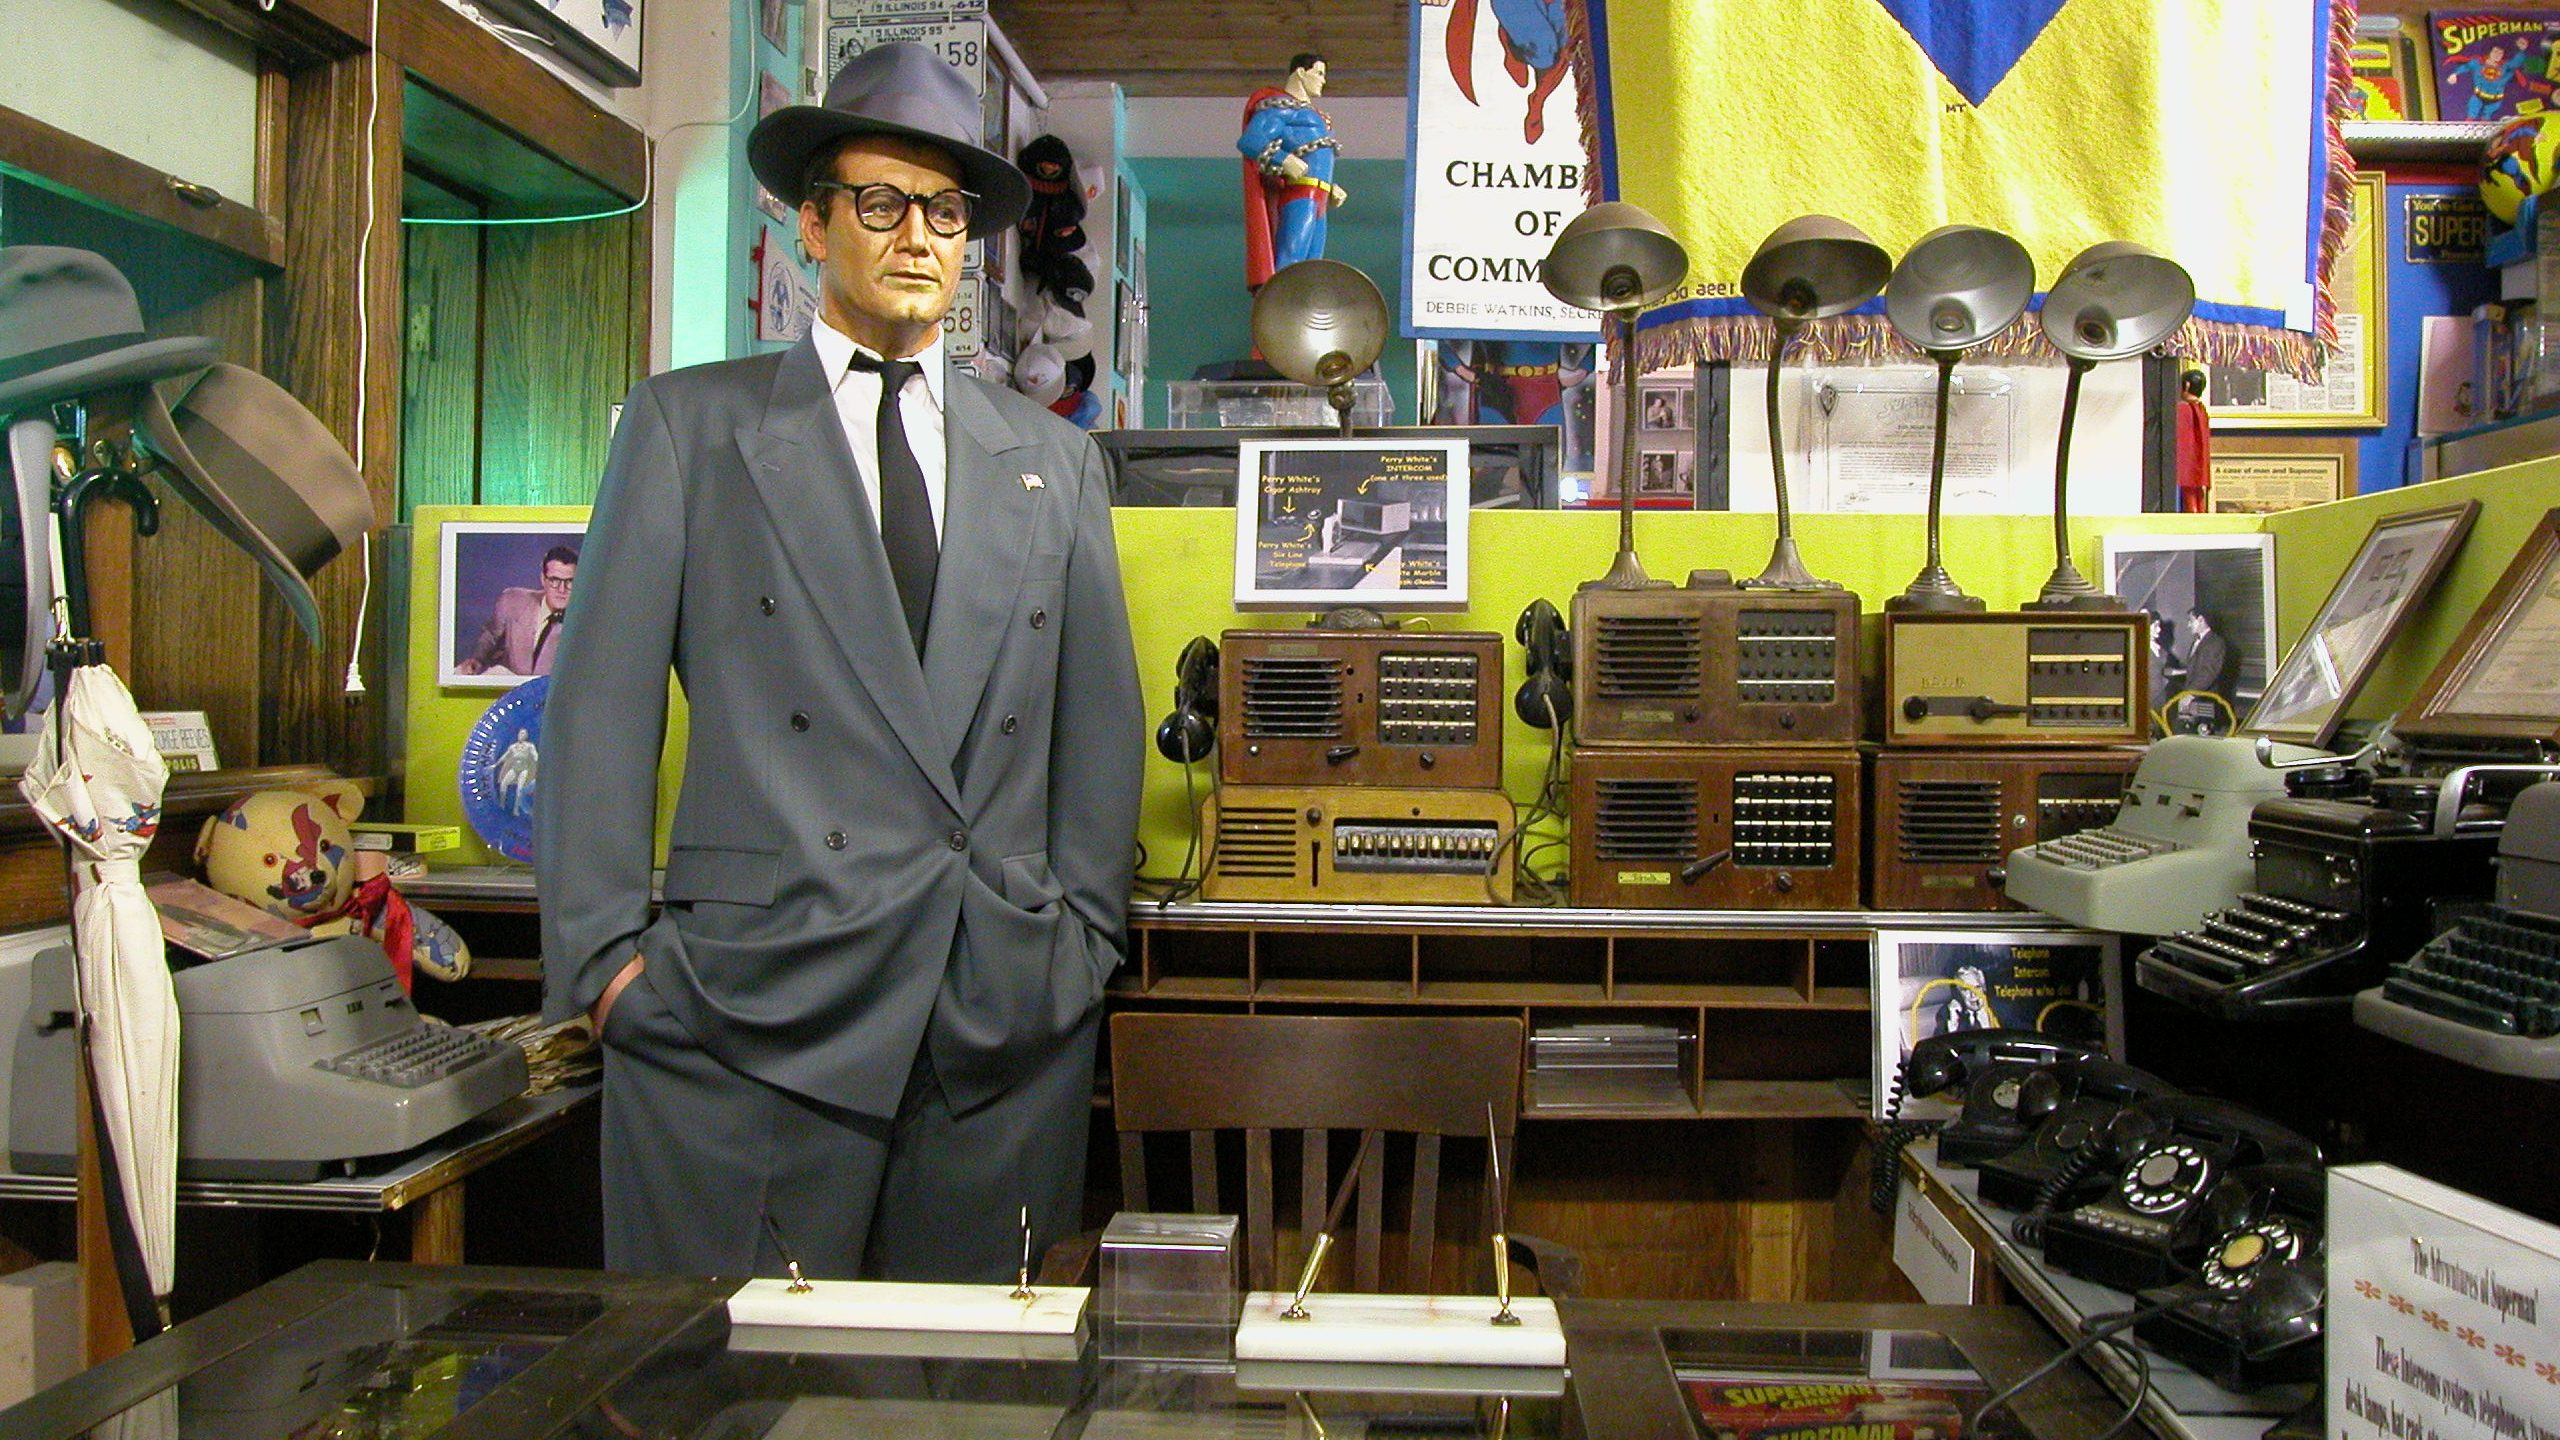 Clark Kent at the Superman museum